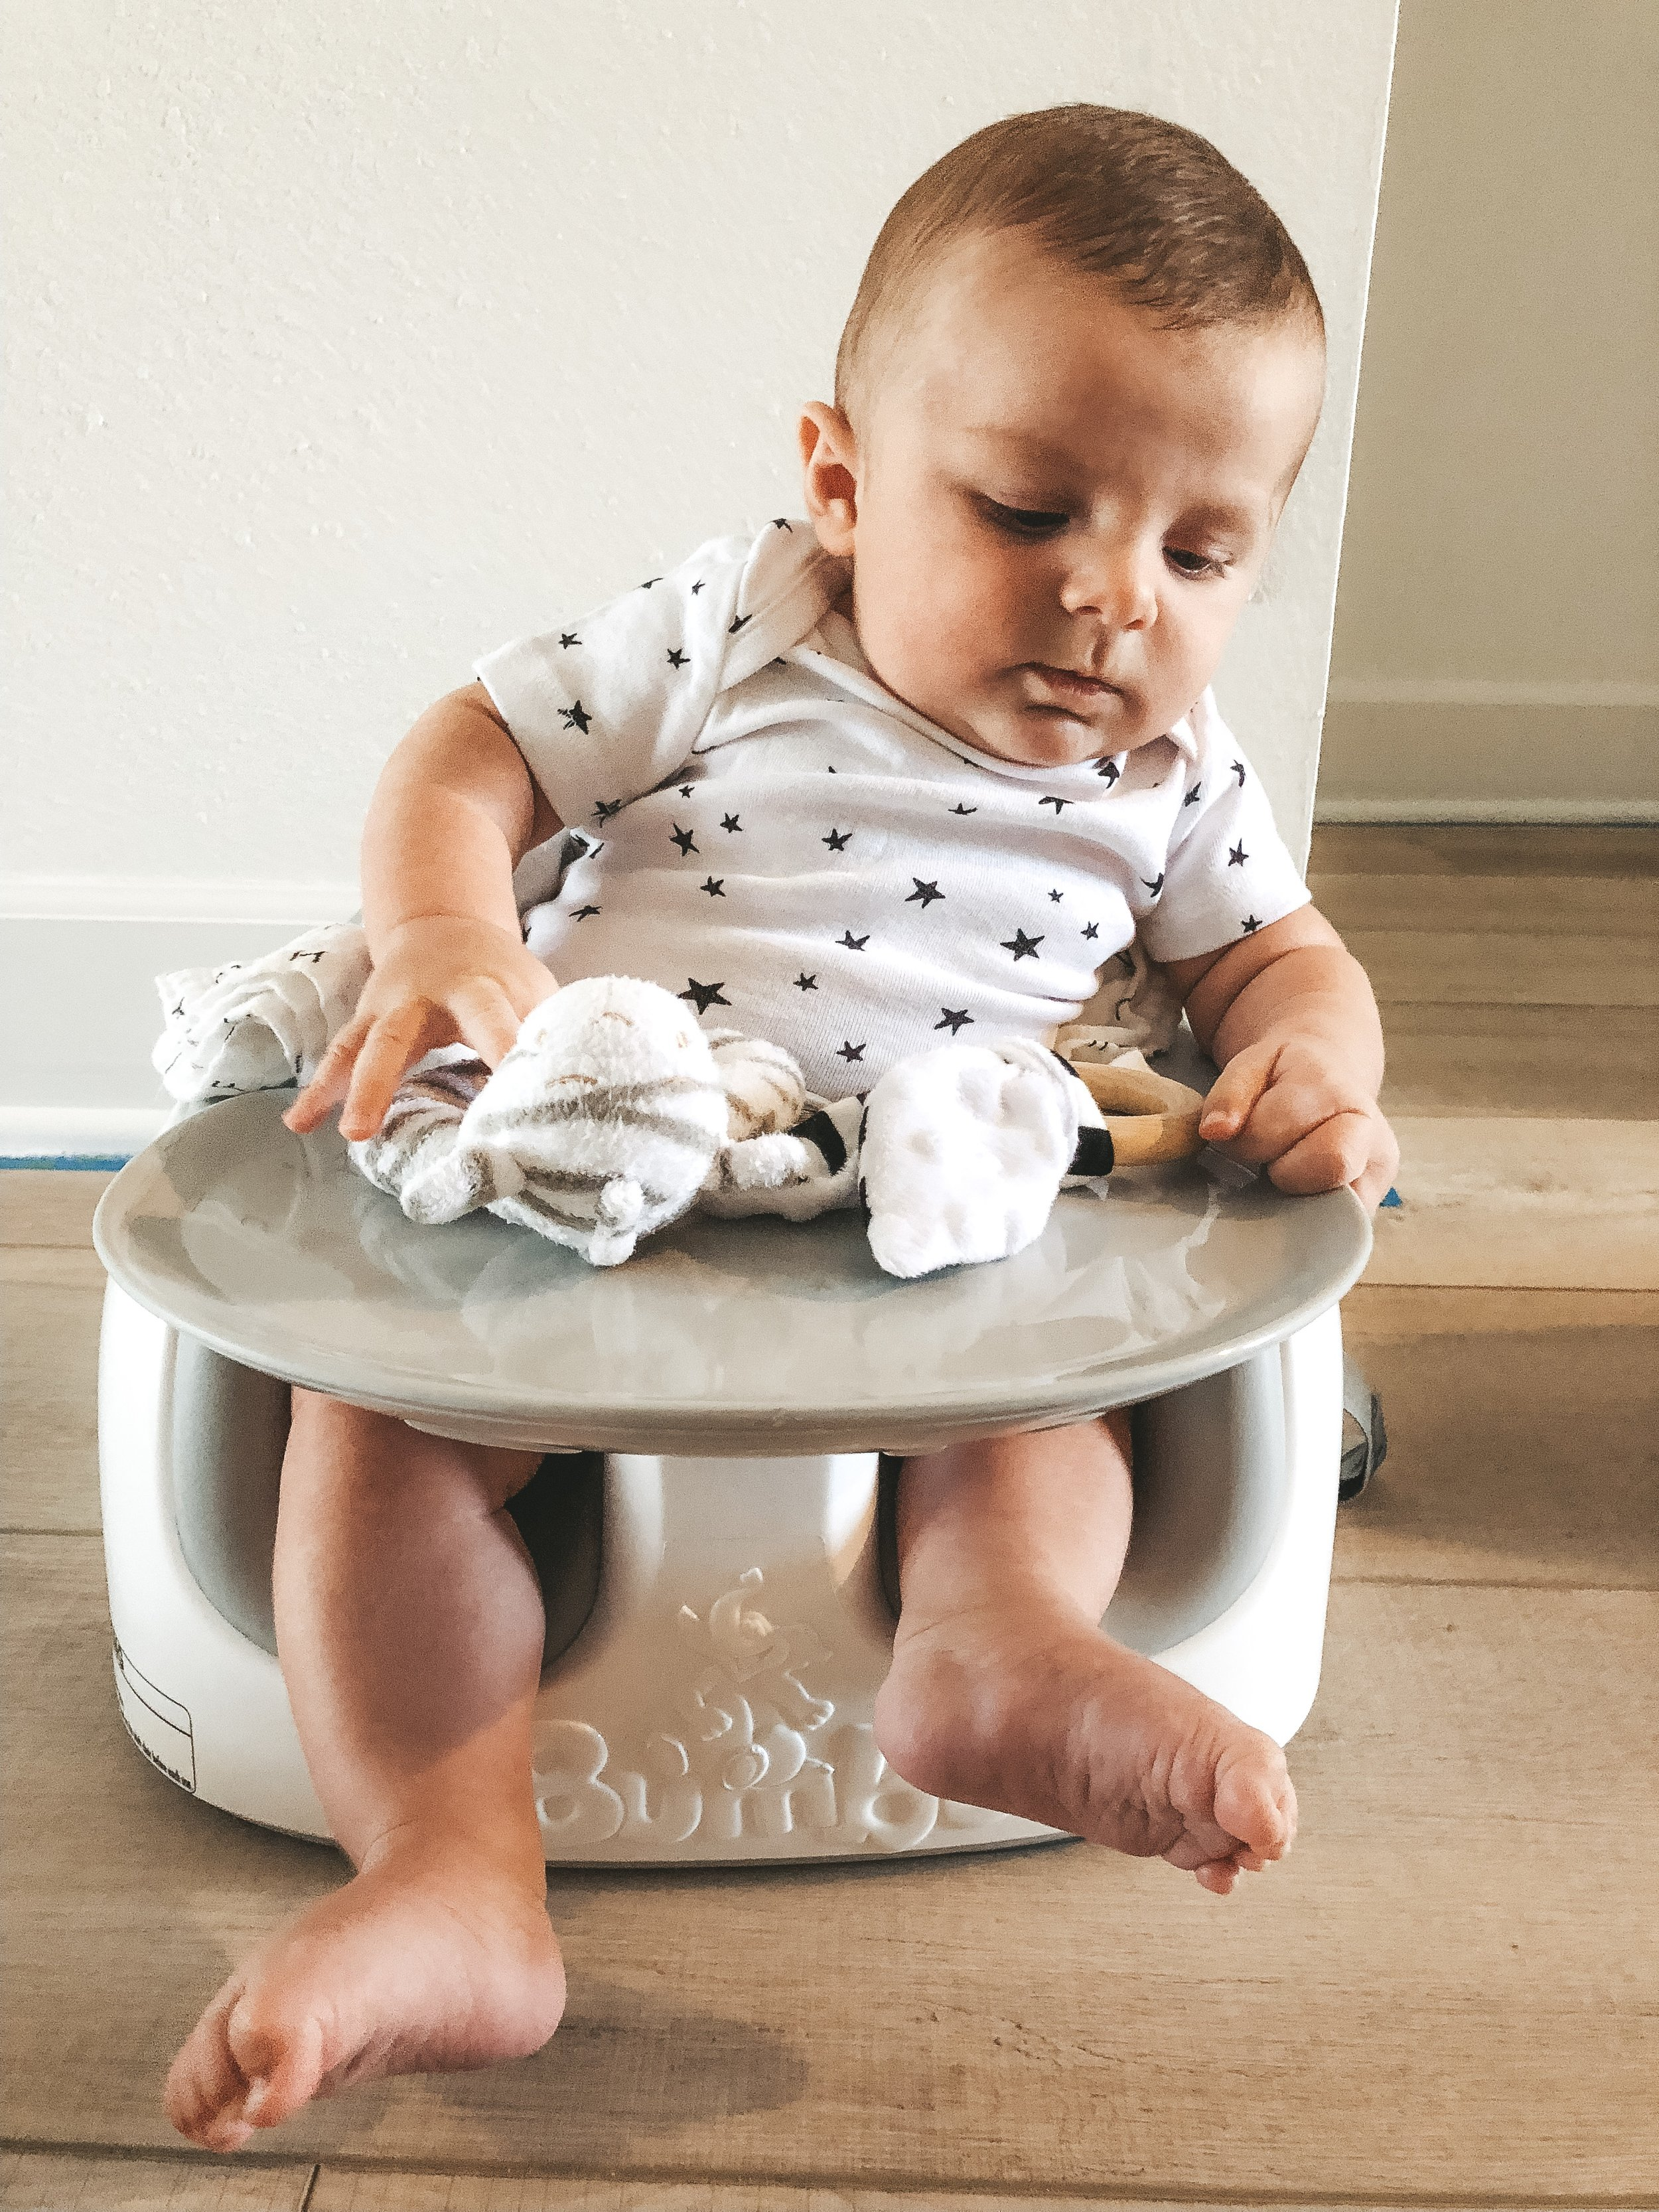 Bumbo seat for baby.